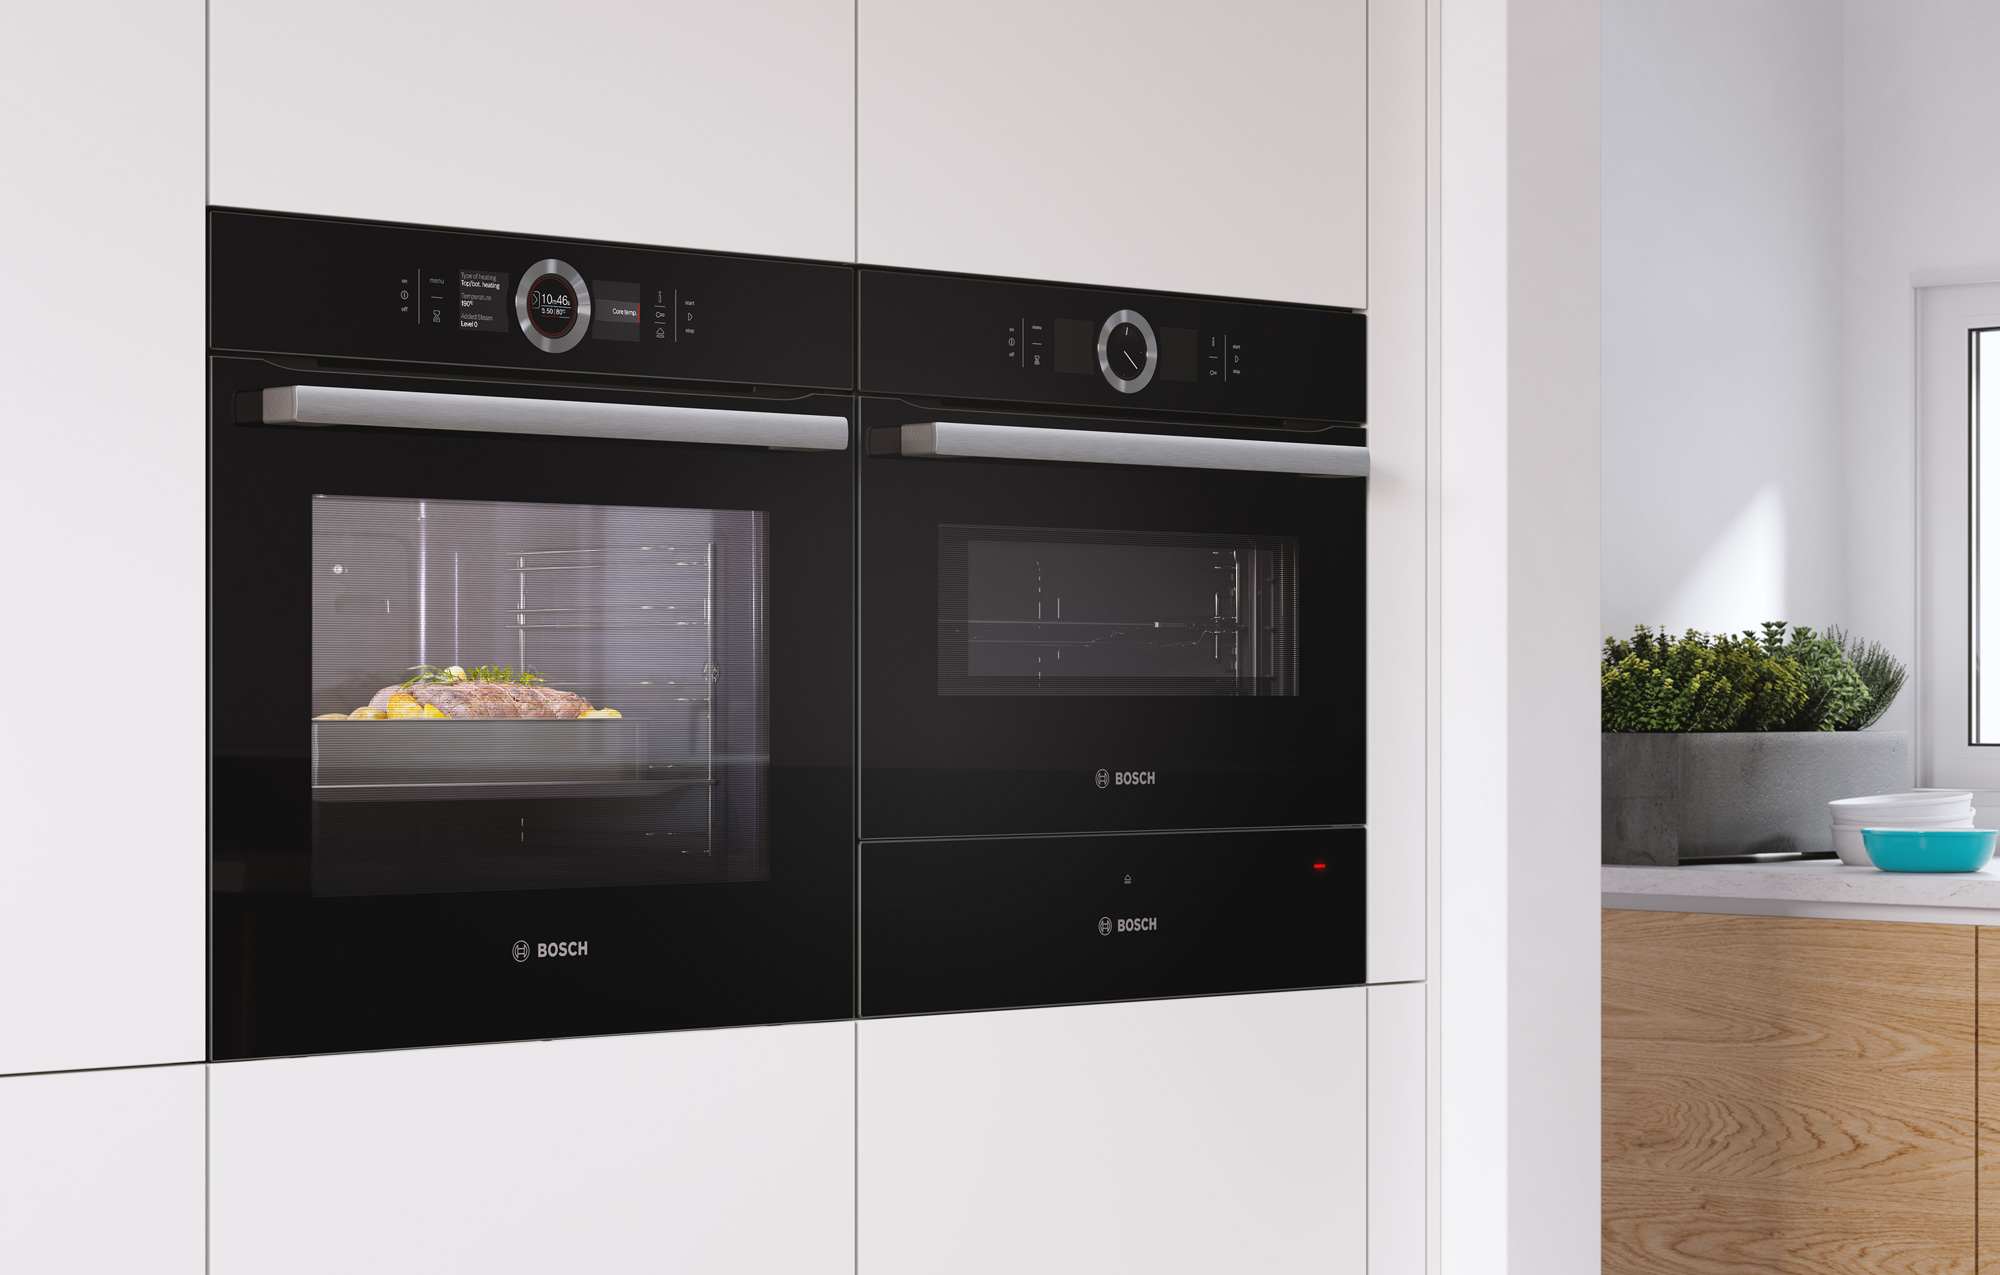 CGI - Bosch - Home Appliances - Oven - Steamer - Warming Drawer